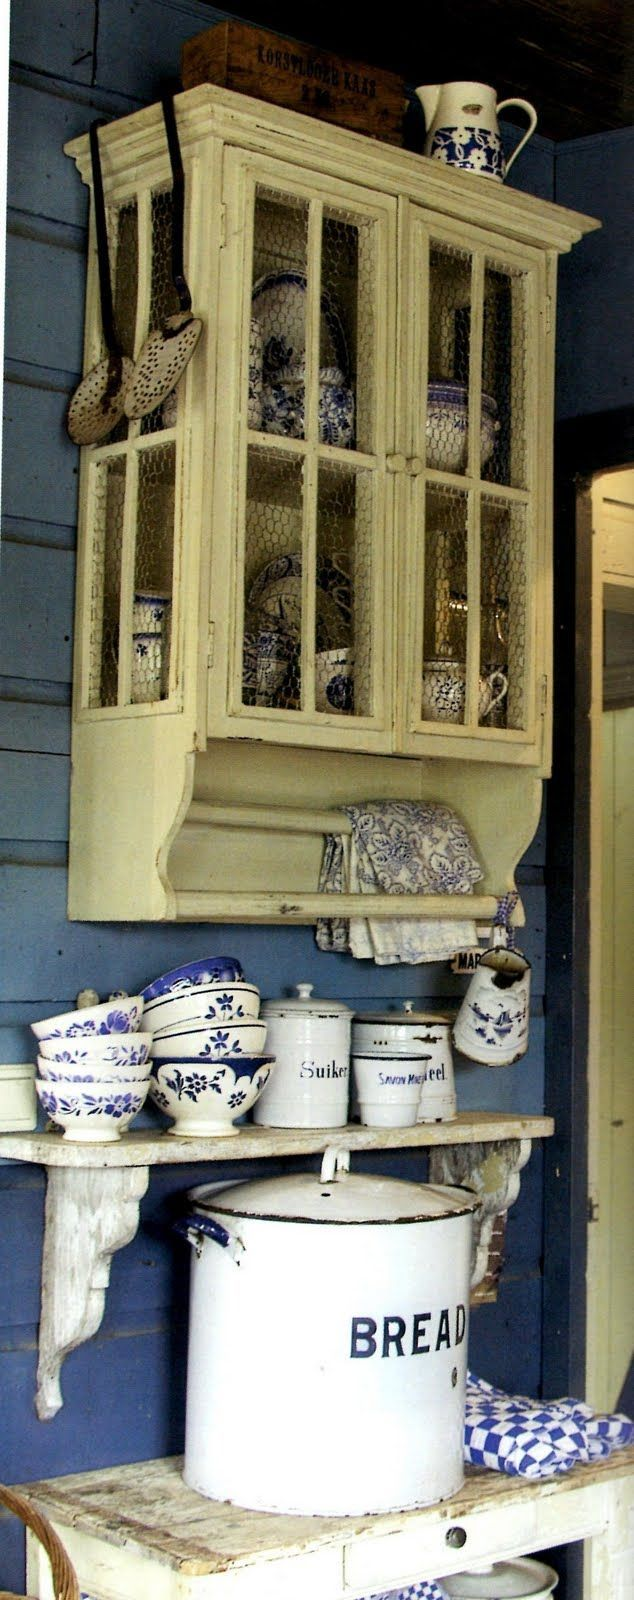 Cabinet of english-cottage-farmhouse: replica of the one in our kitchen.